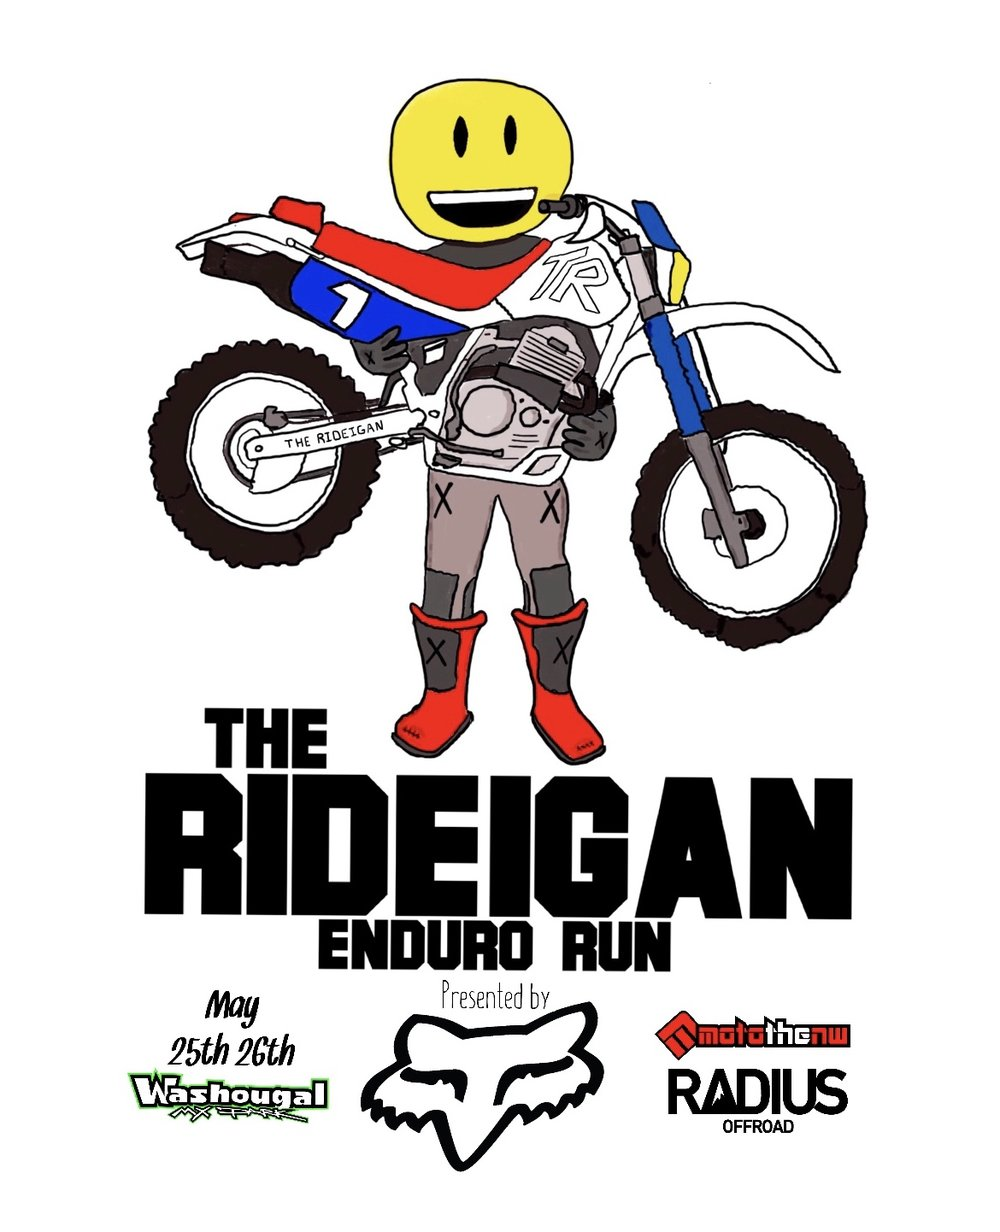 - Rory Sullivan and Joey Lancaster share all about The RIDEIGAIN - The newest and coolest off-road event coming up this Memorial Day weekend at Washougal MX Park. It's no stress, just fun and we can't wait to share all the details with you.